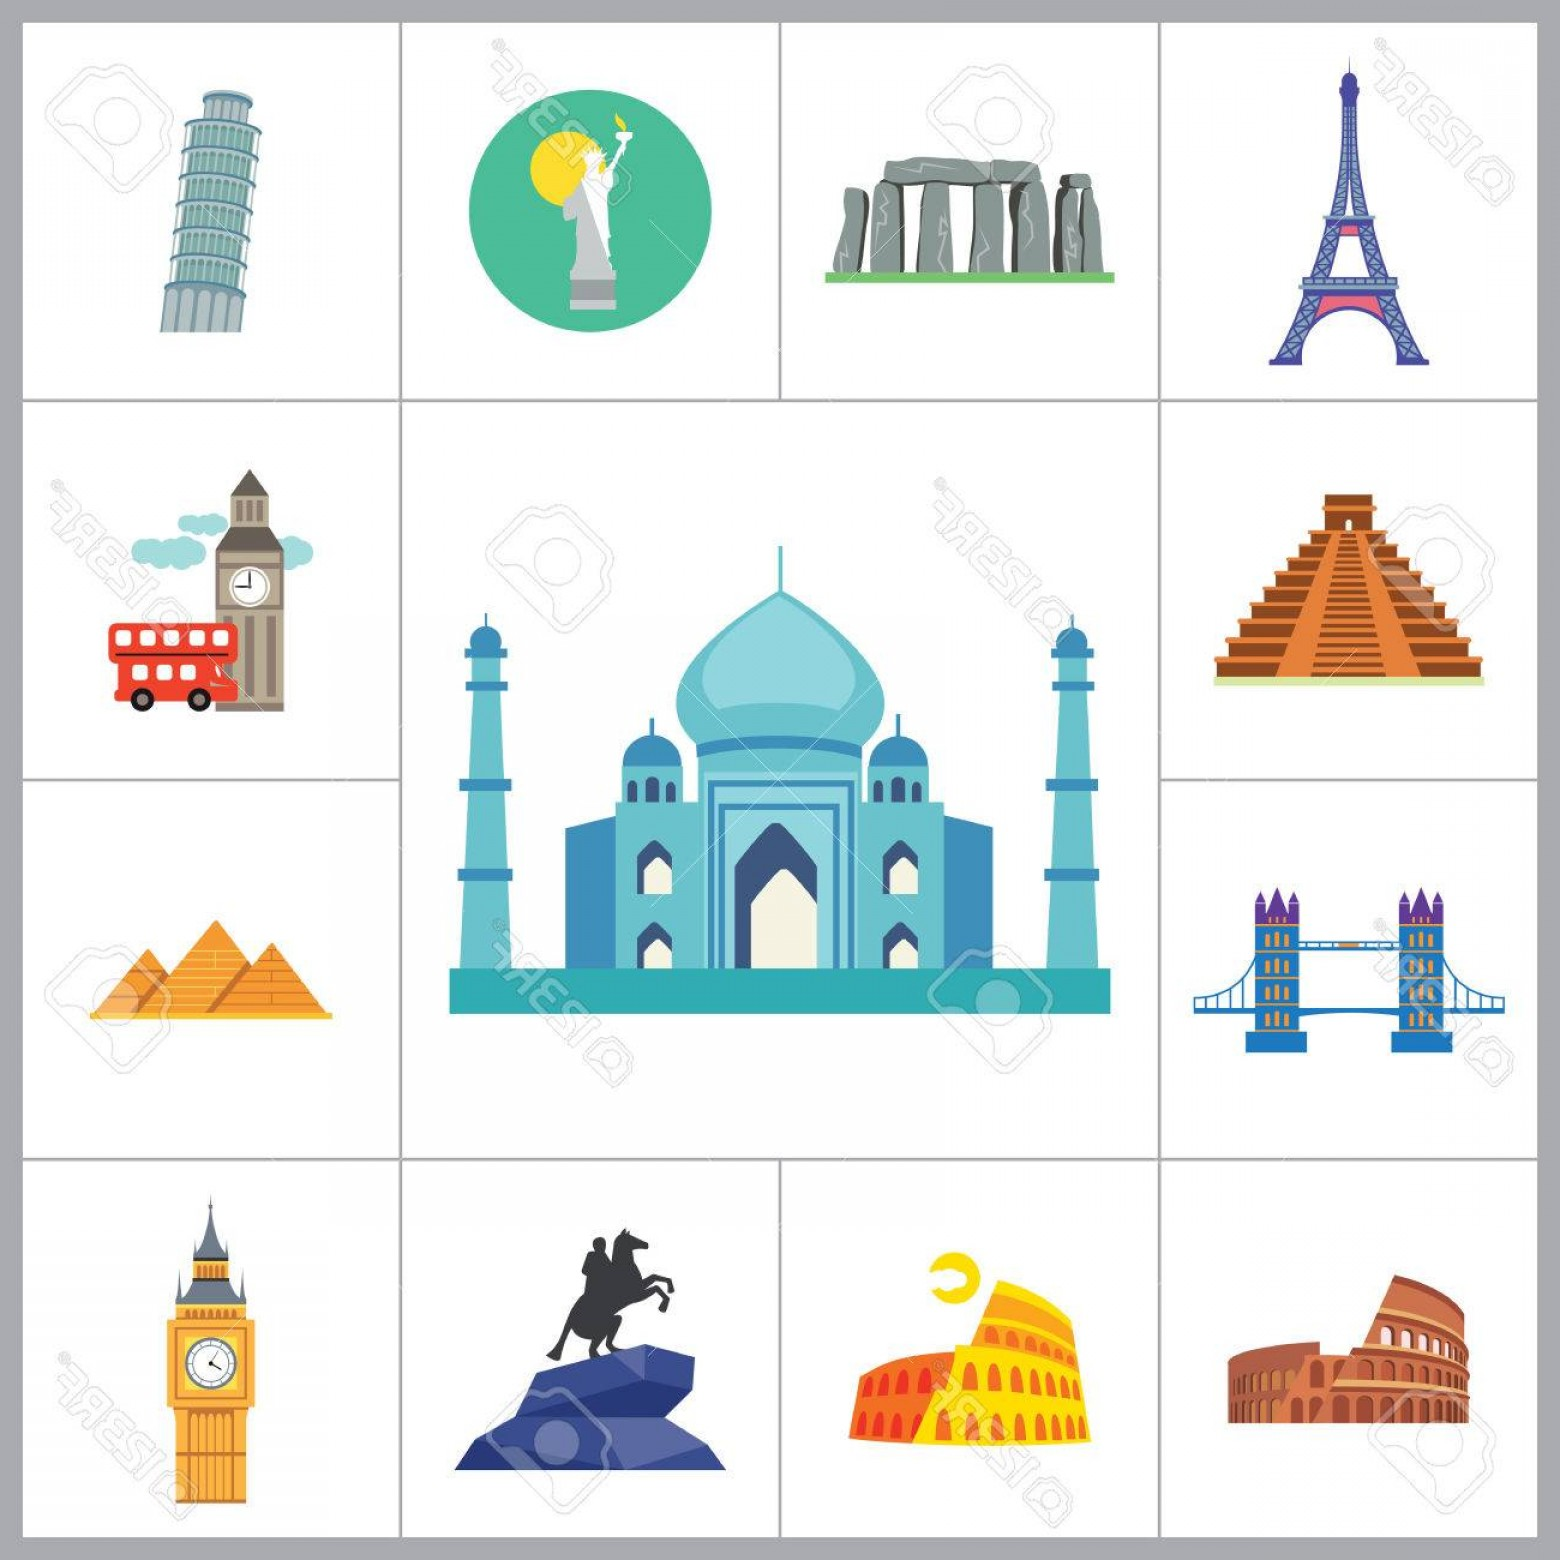 Attraction Icon Vector: Photostock Vector Tourist Attraction Icons Set Thirteen Vector Icons Of Eiffel Tower Big Ben Pyramids And Other Touris